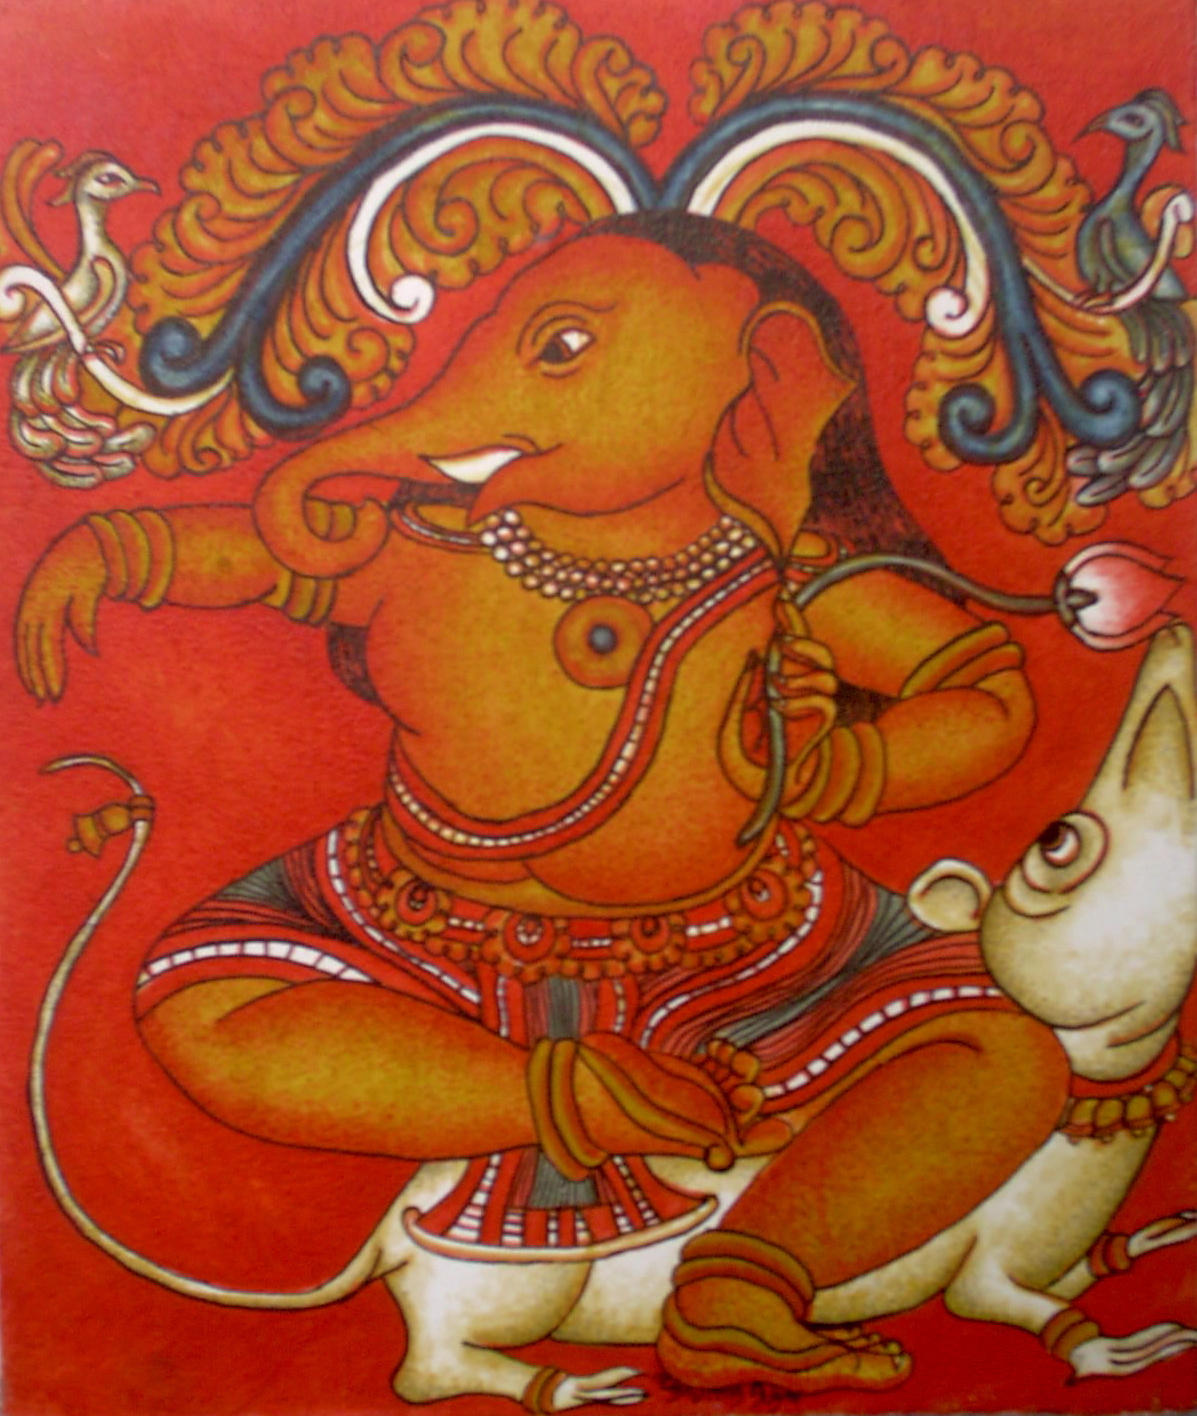 Collection of amazingly beautiful mural art works from for Mural art of ganesha